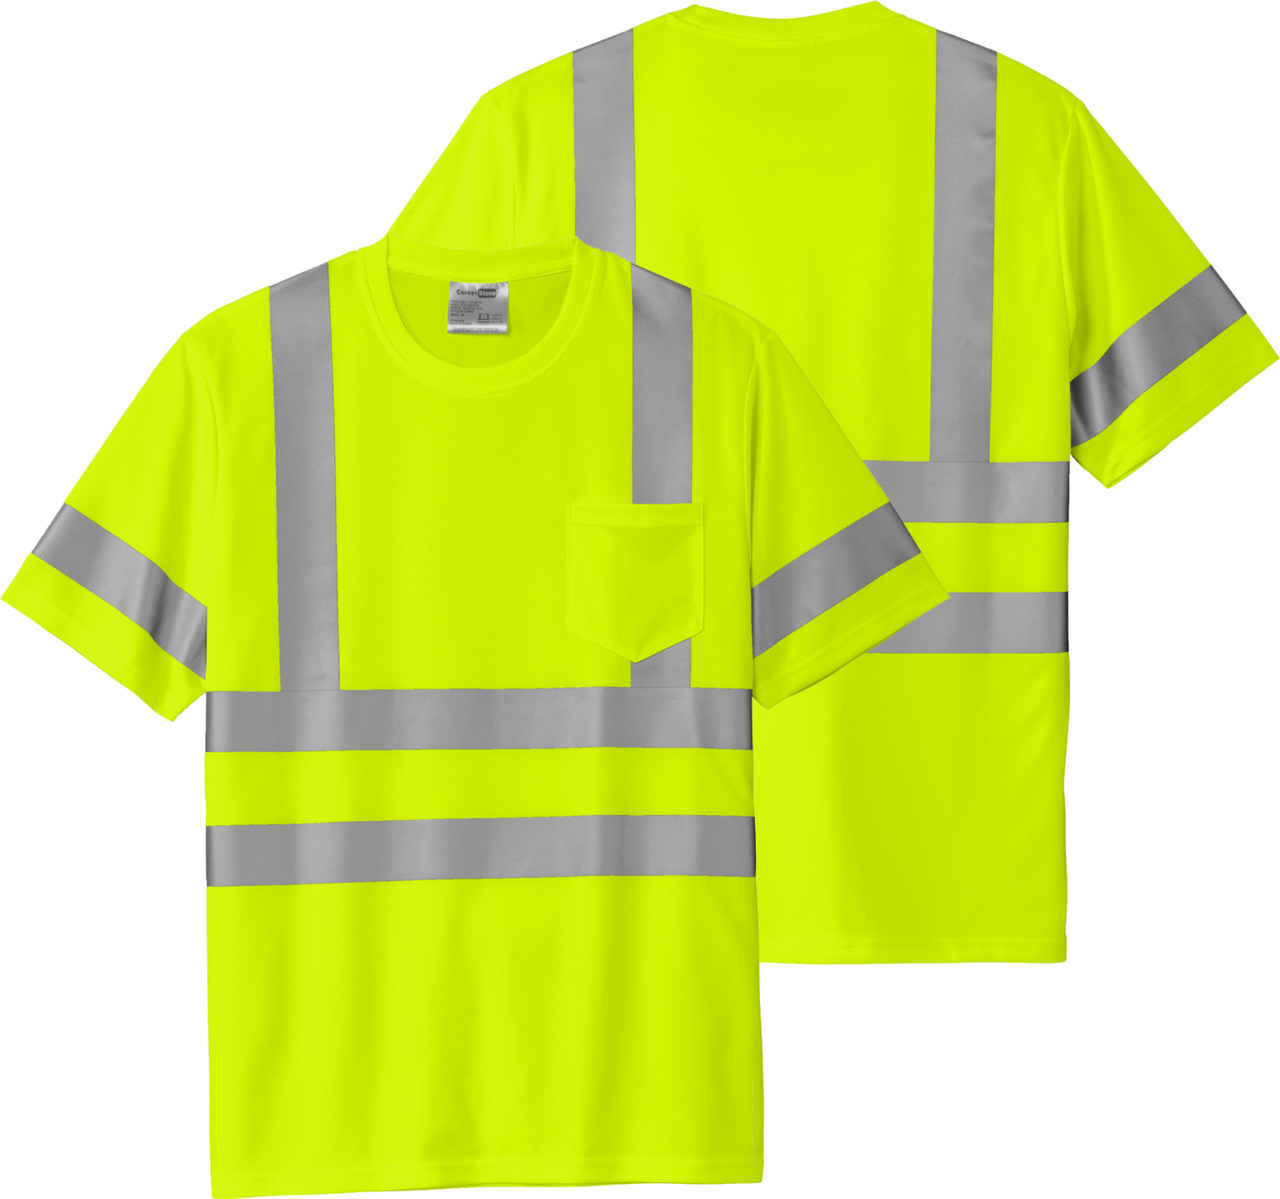 Safety Yellow Class 3 Reflective Tshirt 100% Polyester   Safety Green Class 3 Reflective Tshirt 100% Polyester